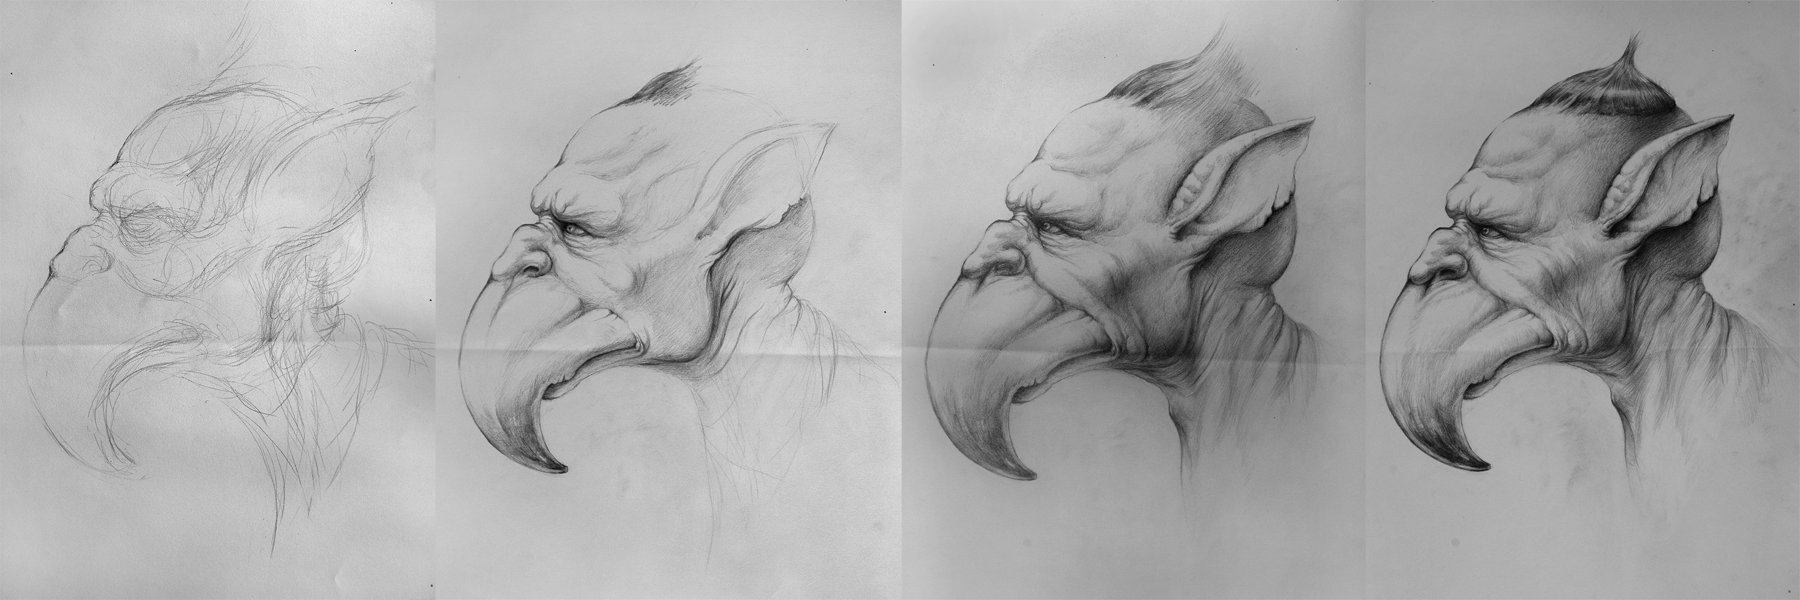 Xin wang birdman sketch progress 1800